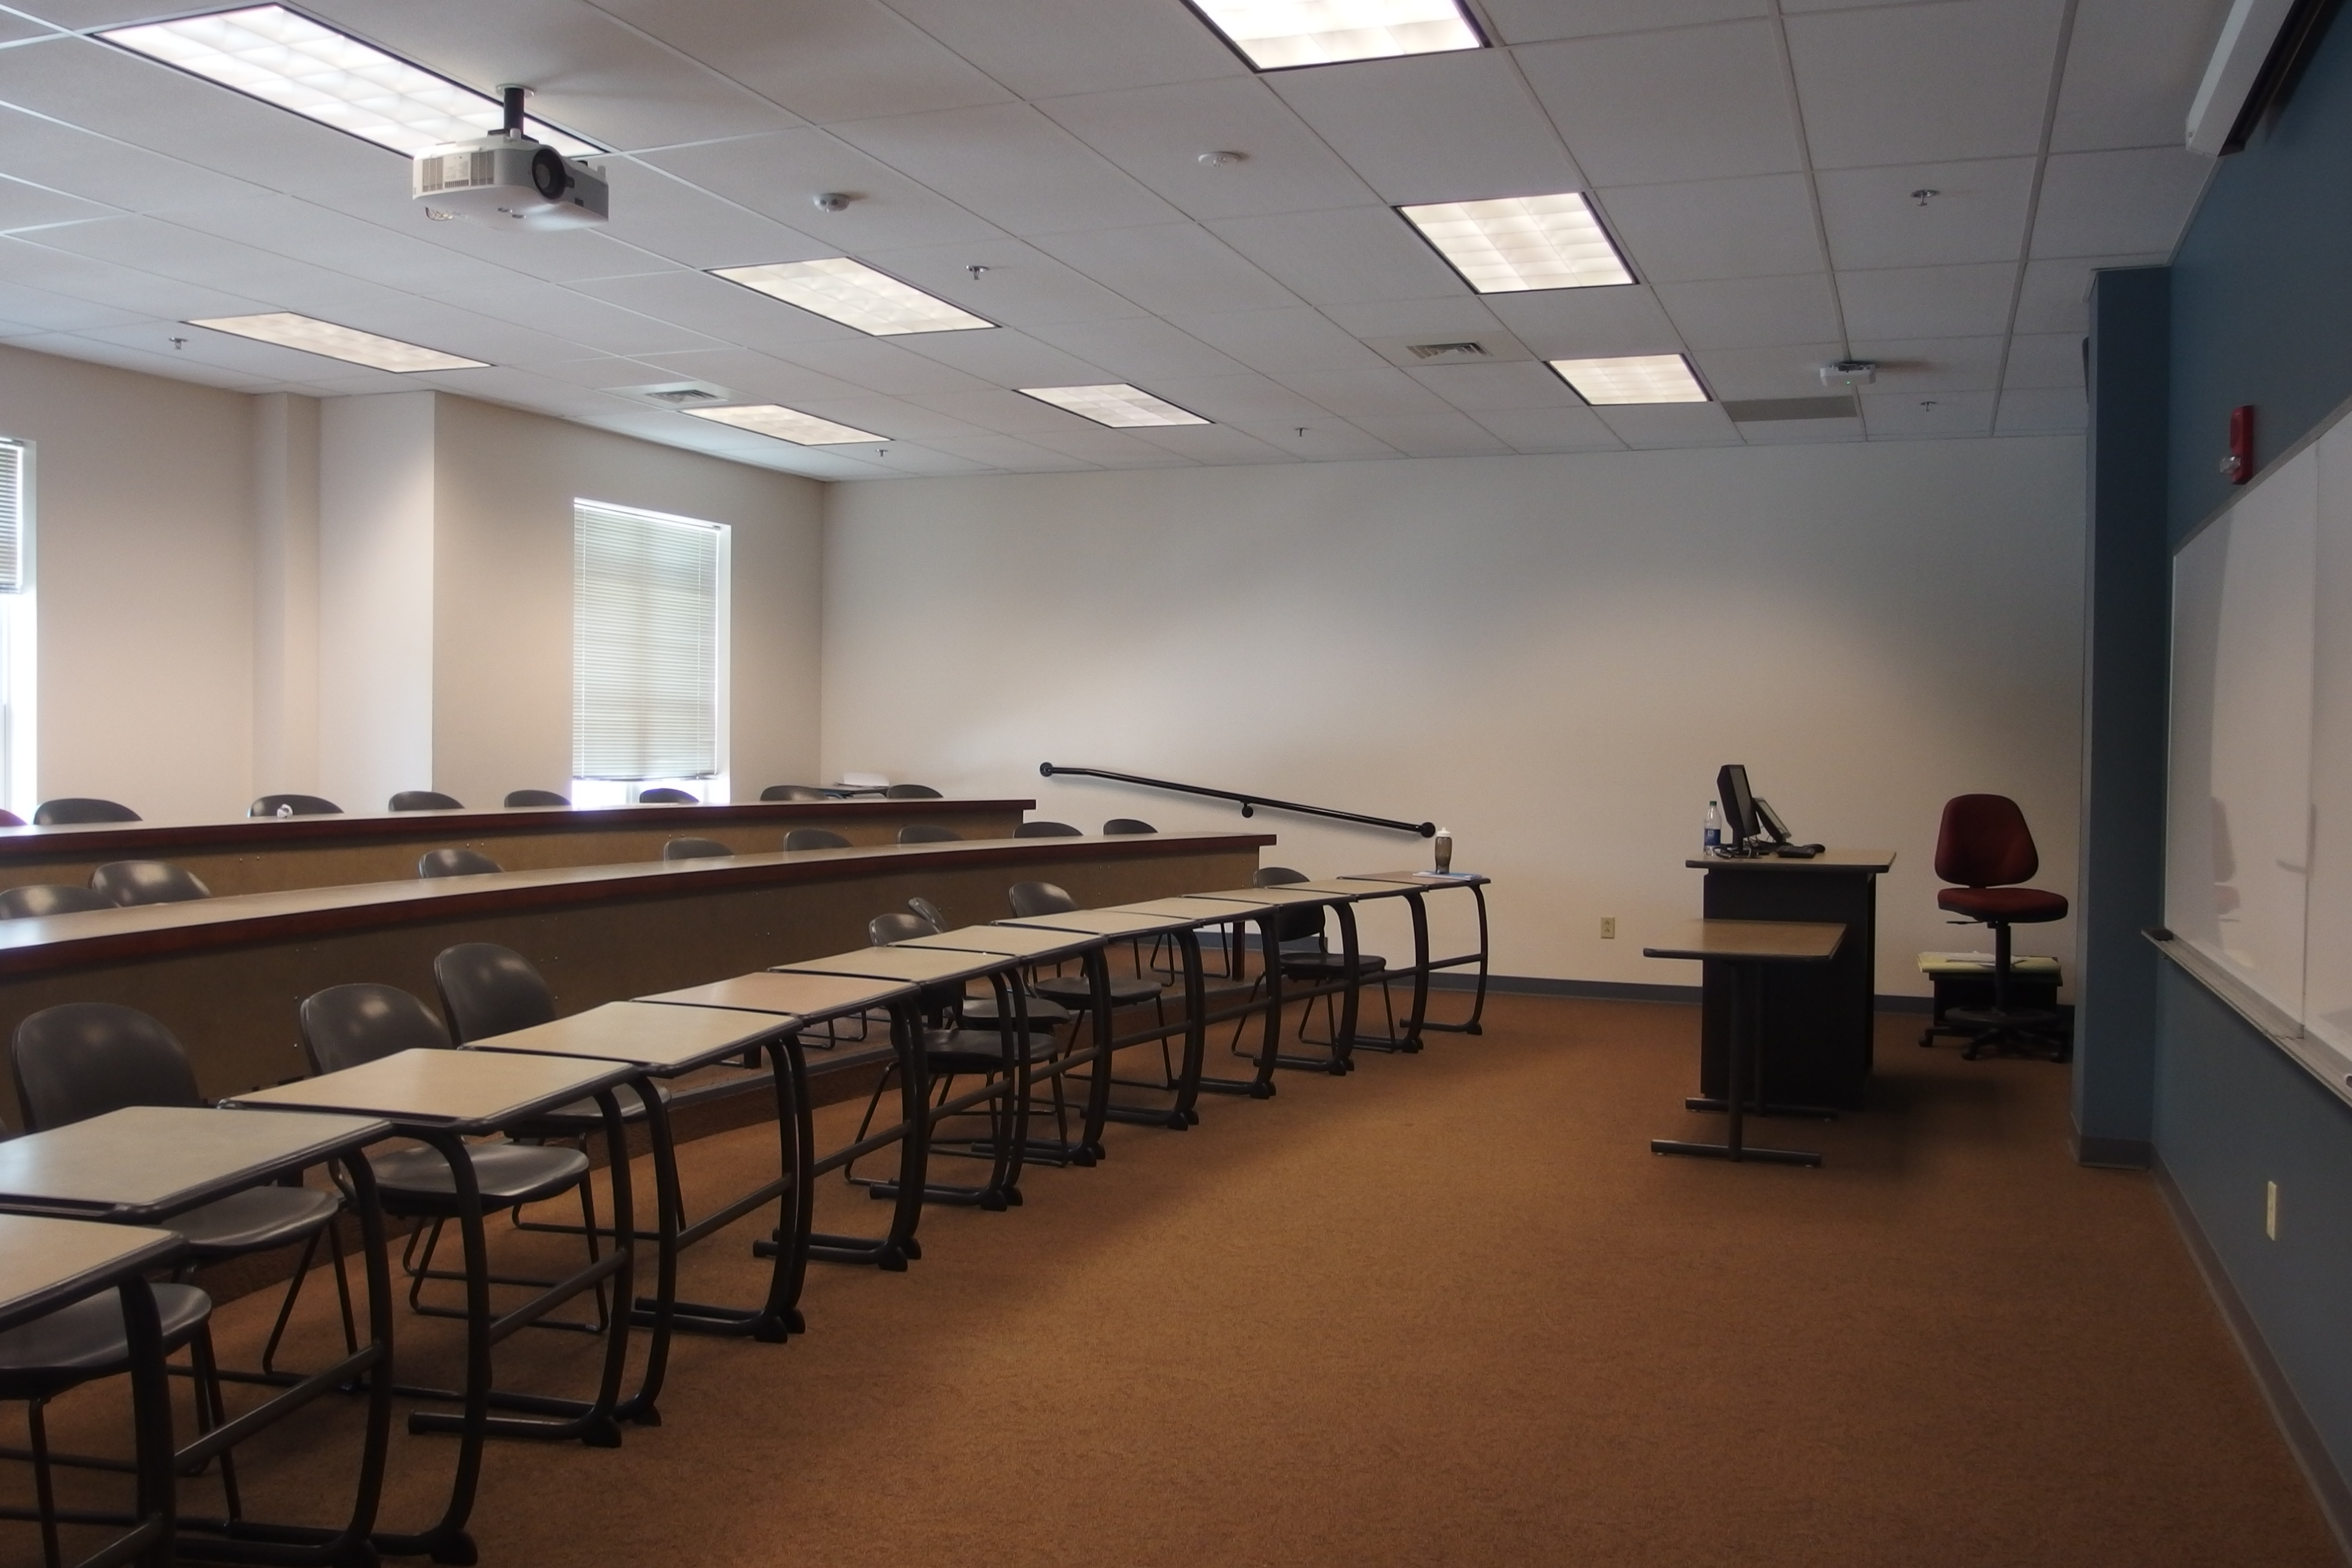 Photo of the room taken from the front center showing the instructor's station and first row of student desks